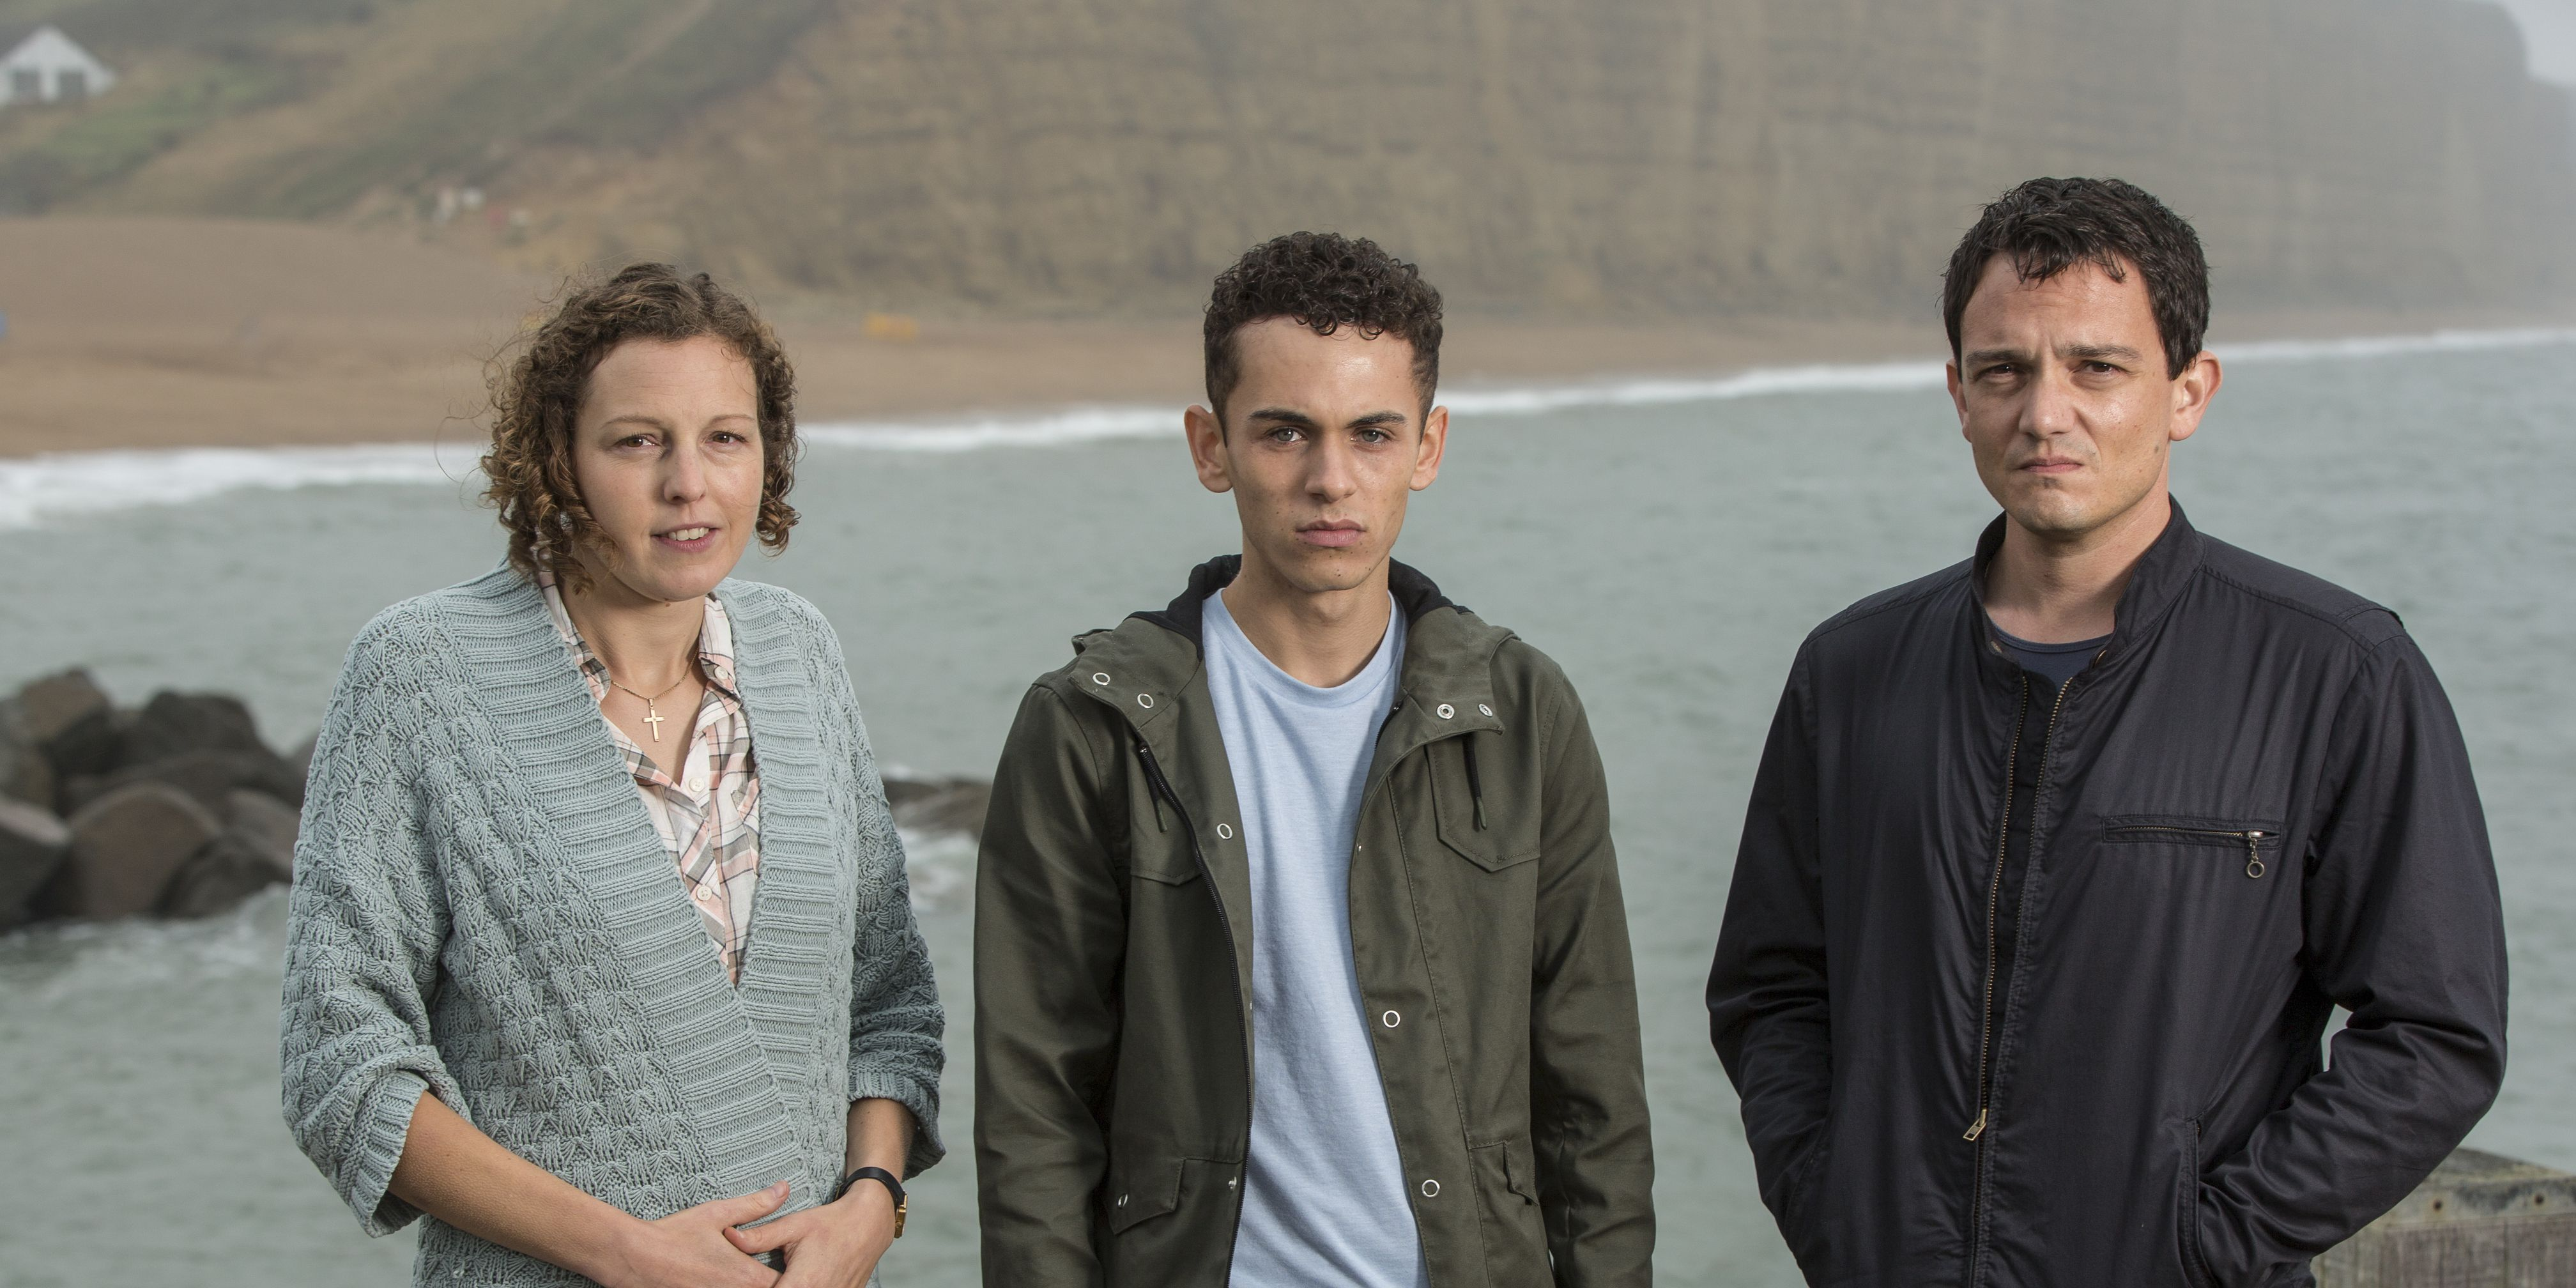 Clive Lucas and family in 'Broadchurch' series 3